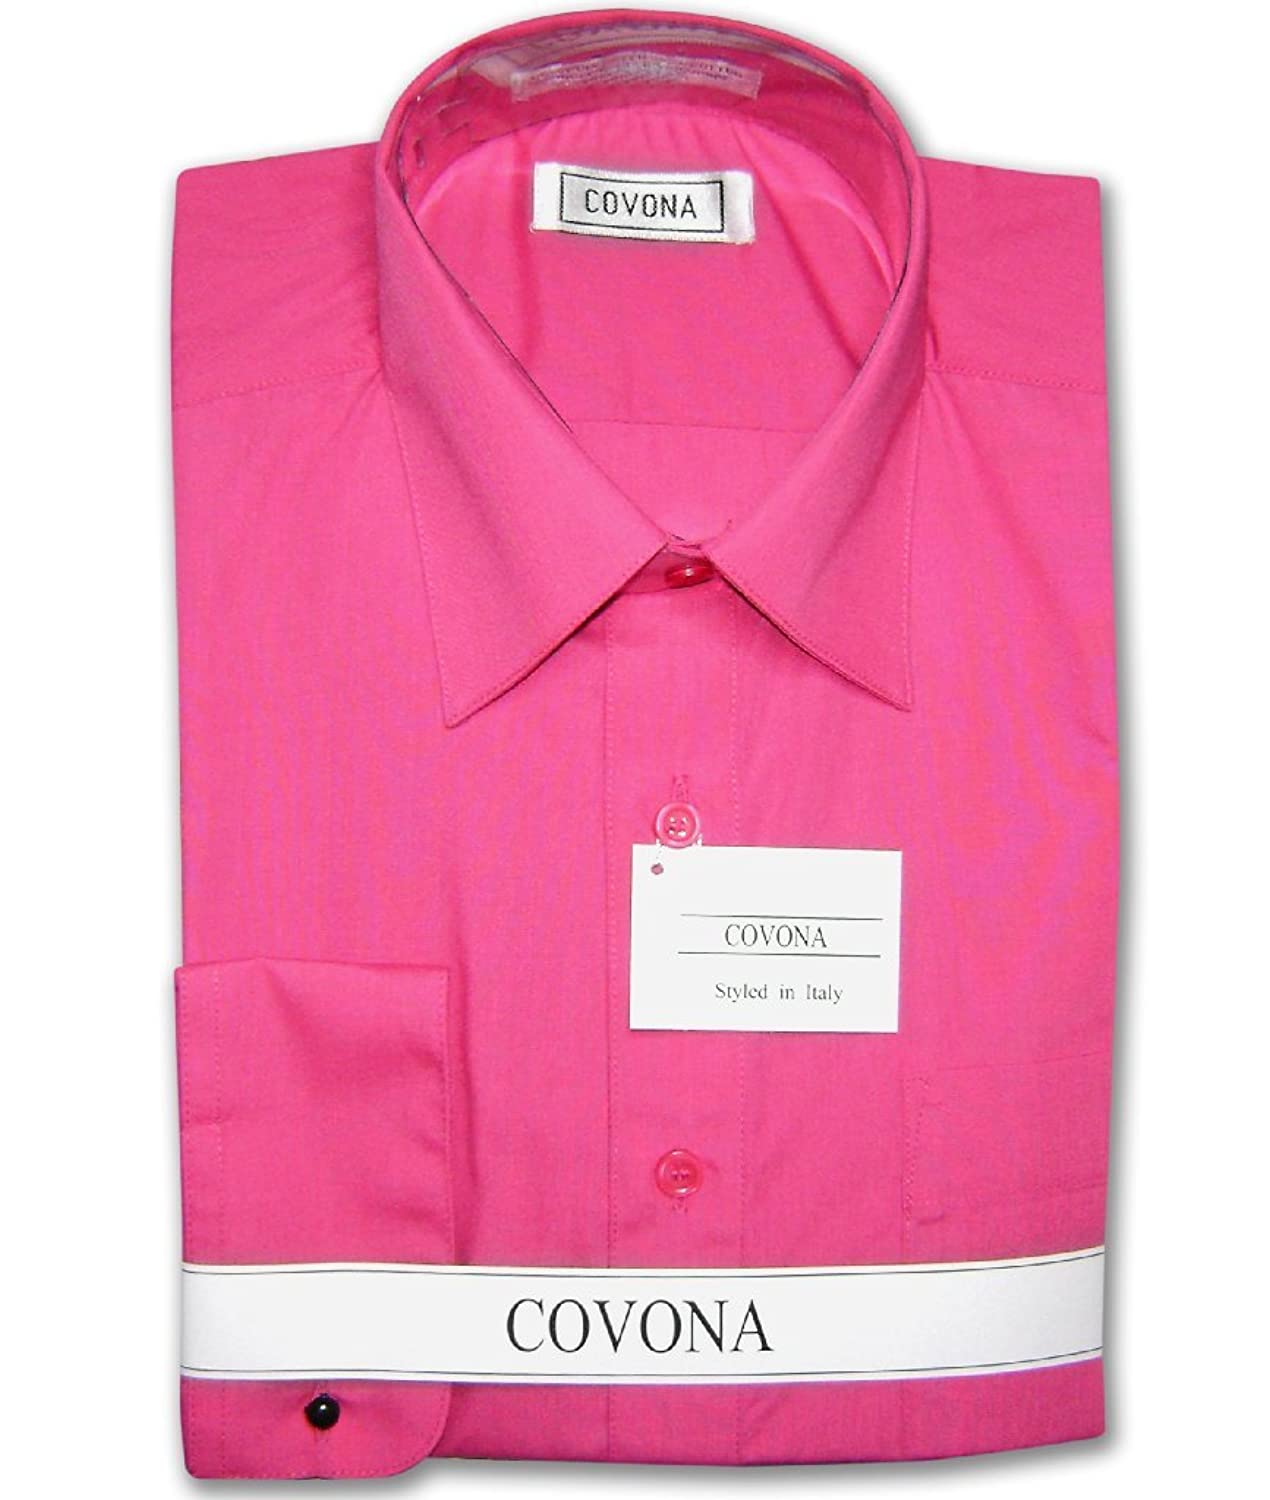 Pink Dress Shirts for Men at Macy's come in a variety of styles and sizes. Shop top brands for Men's Dress Shirts and find the perfect fit today.